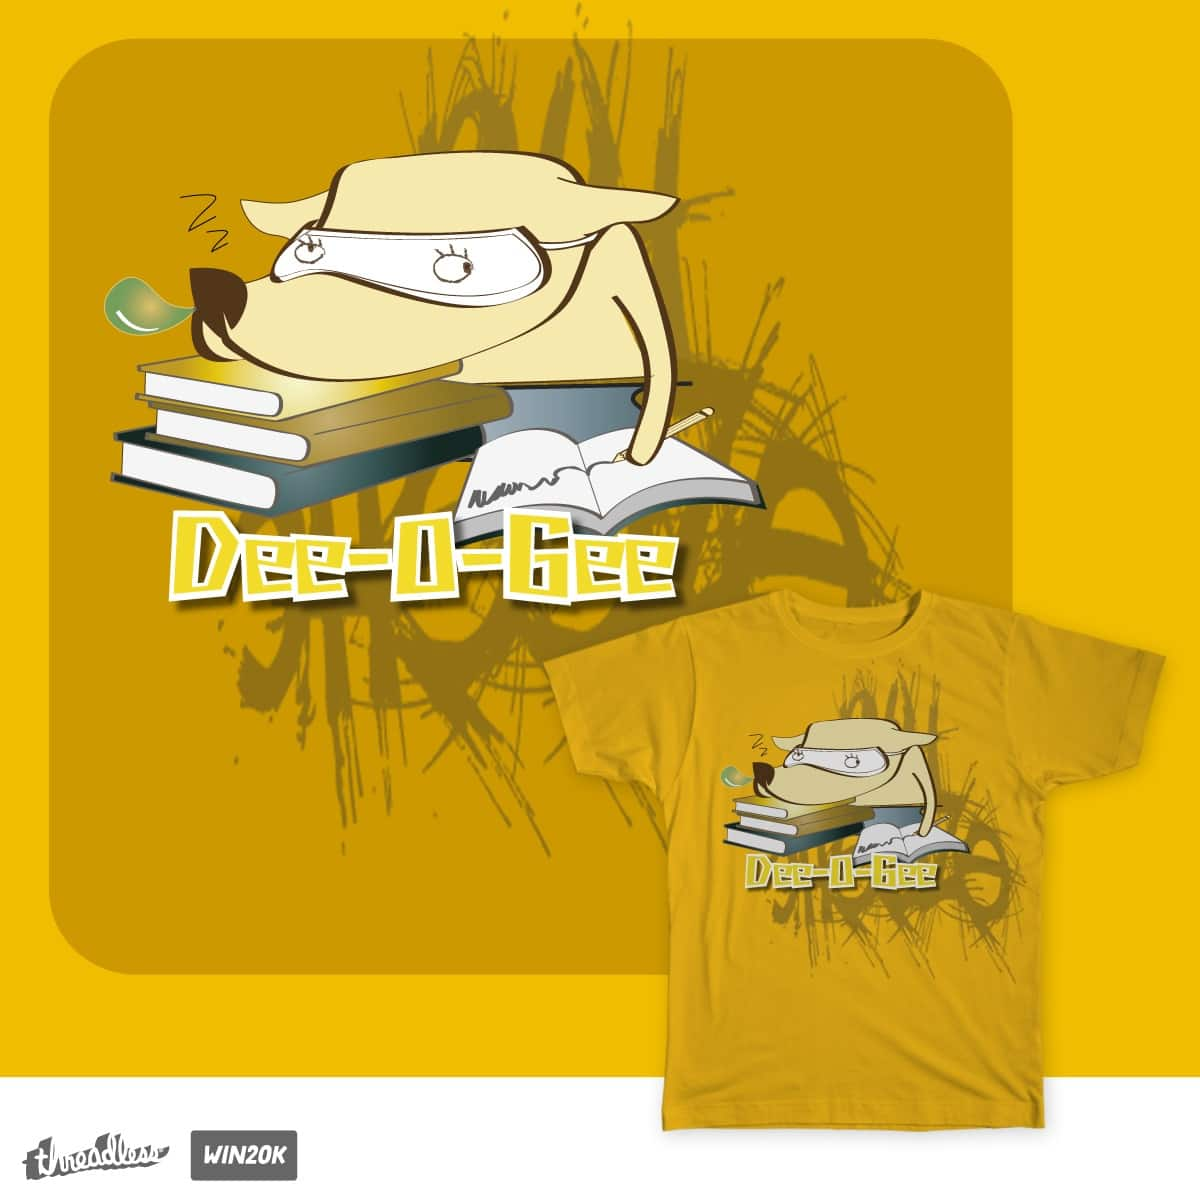 Dee-O-Gee by spanwat on Threadless